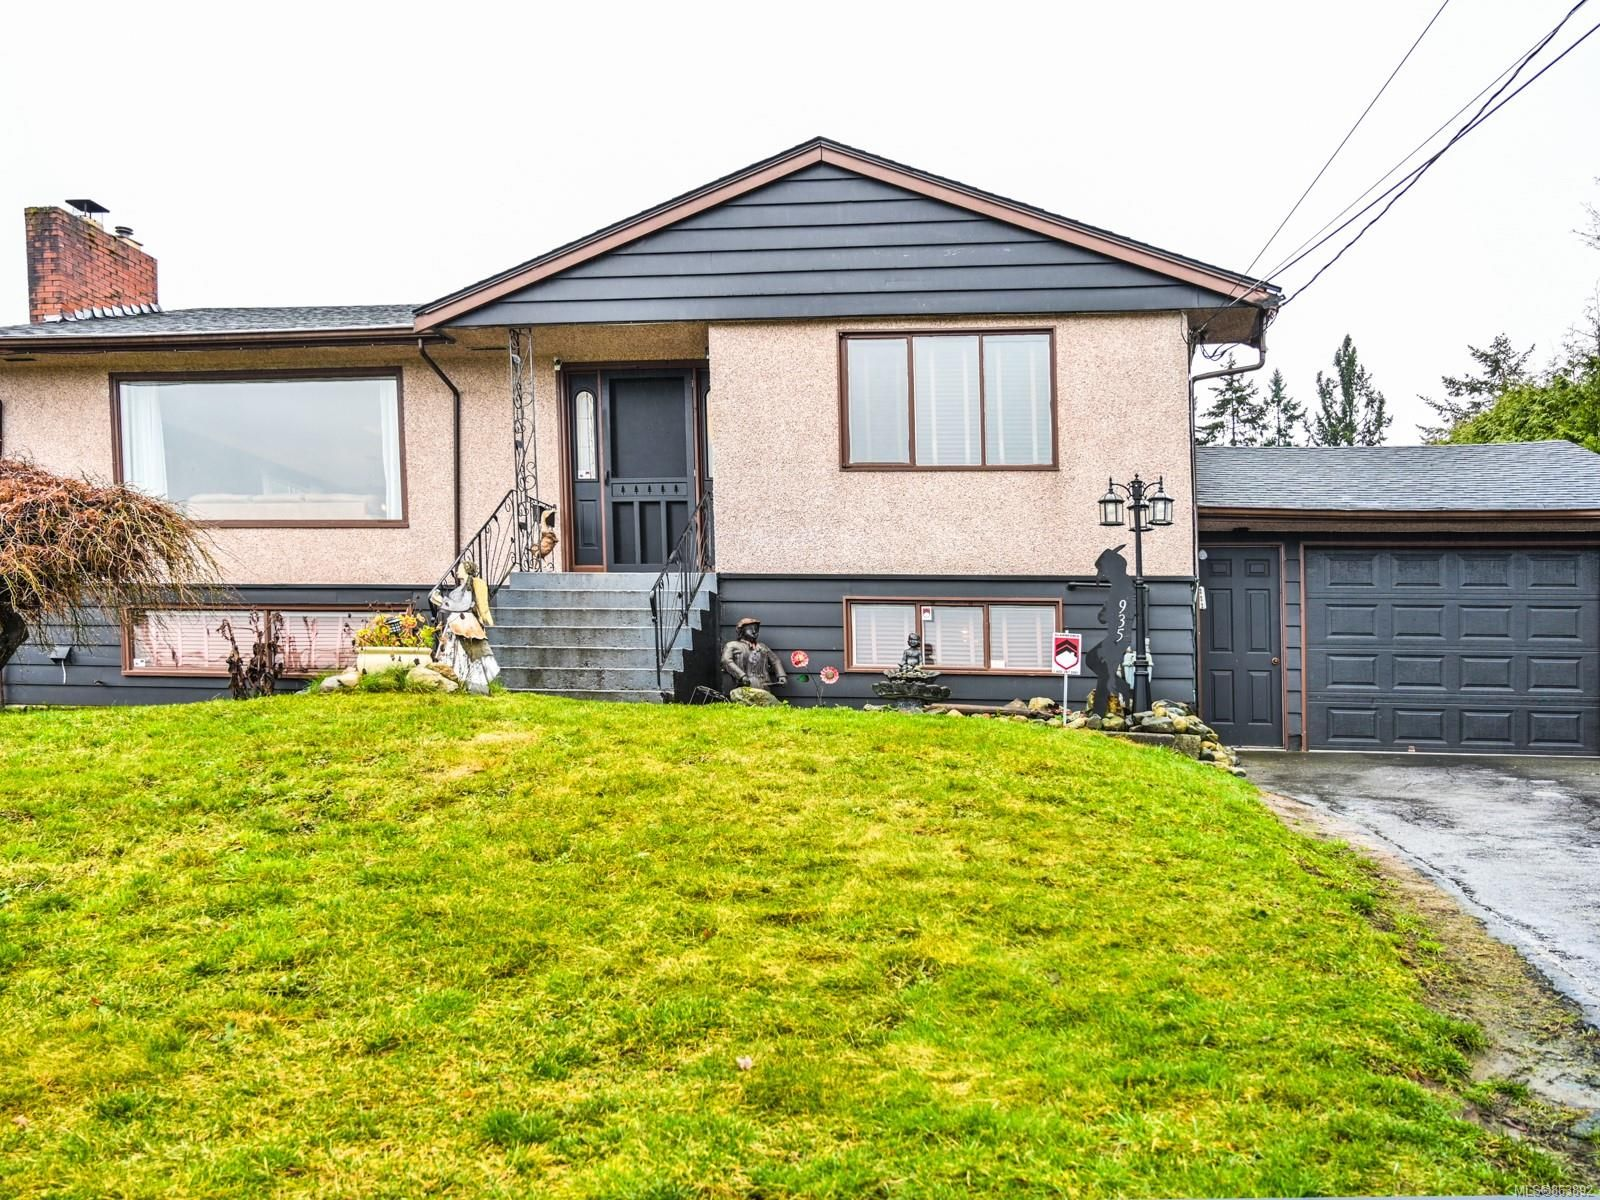 Main Photo: 935 Brechin Rd in : Na Departure Bay House for sale (Nanaimo)  : MLS®# 863892